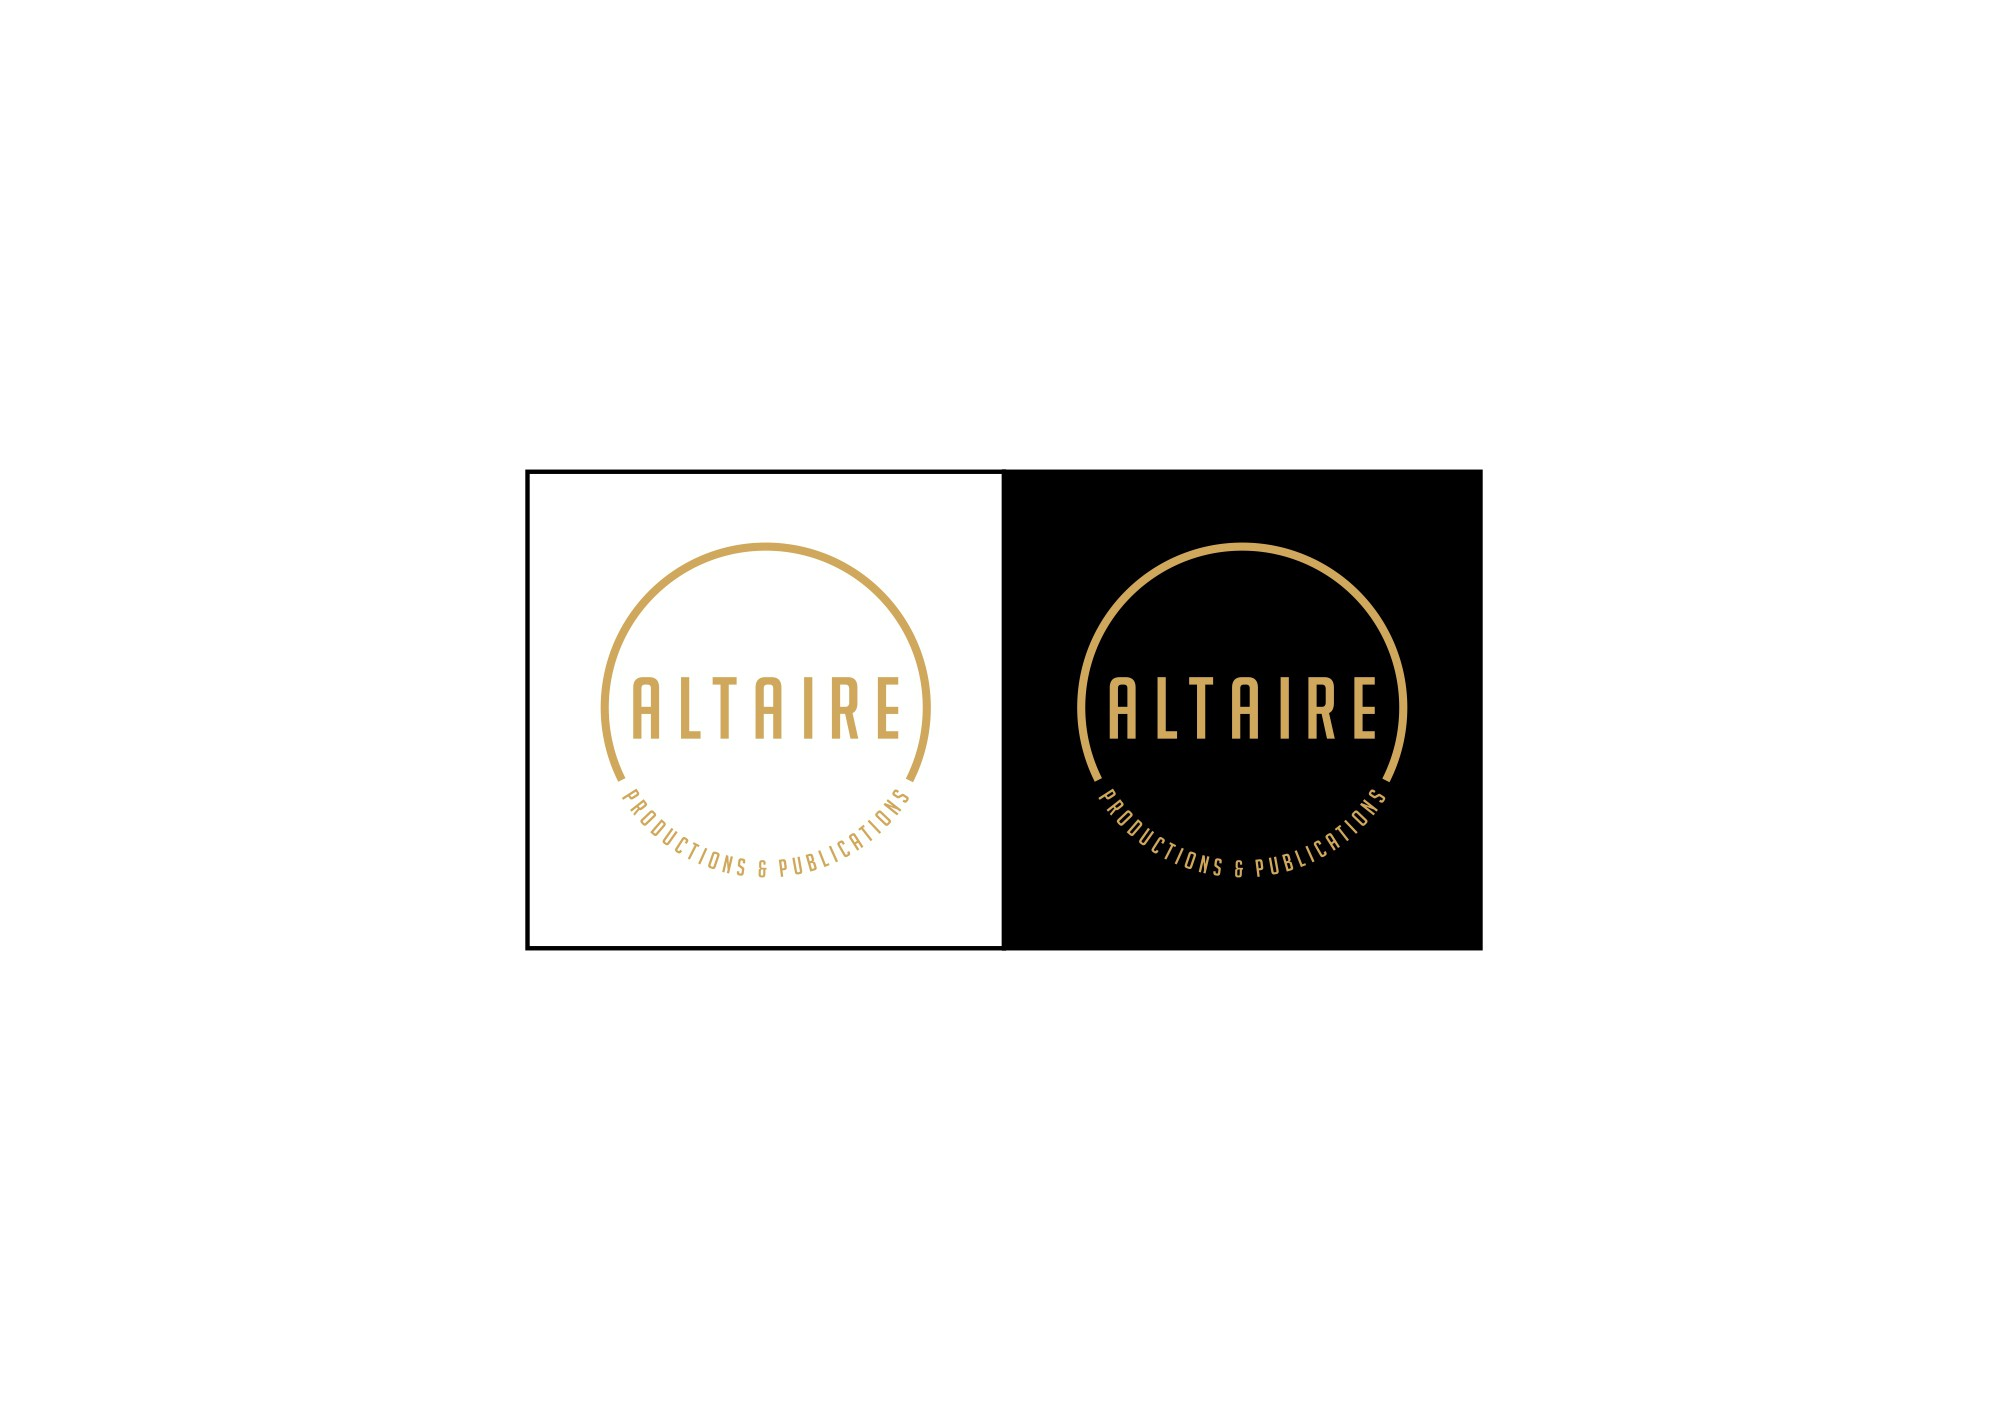 ALTAIRE PRODUCTIONS AND PUBLICATIONS needs a new logo